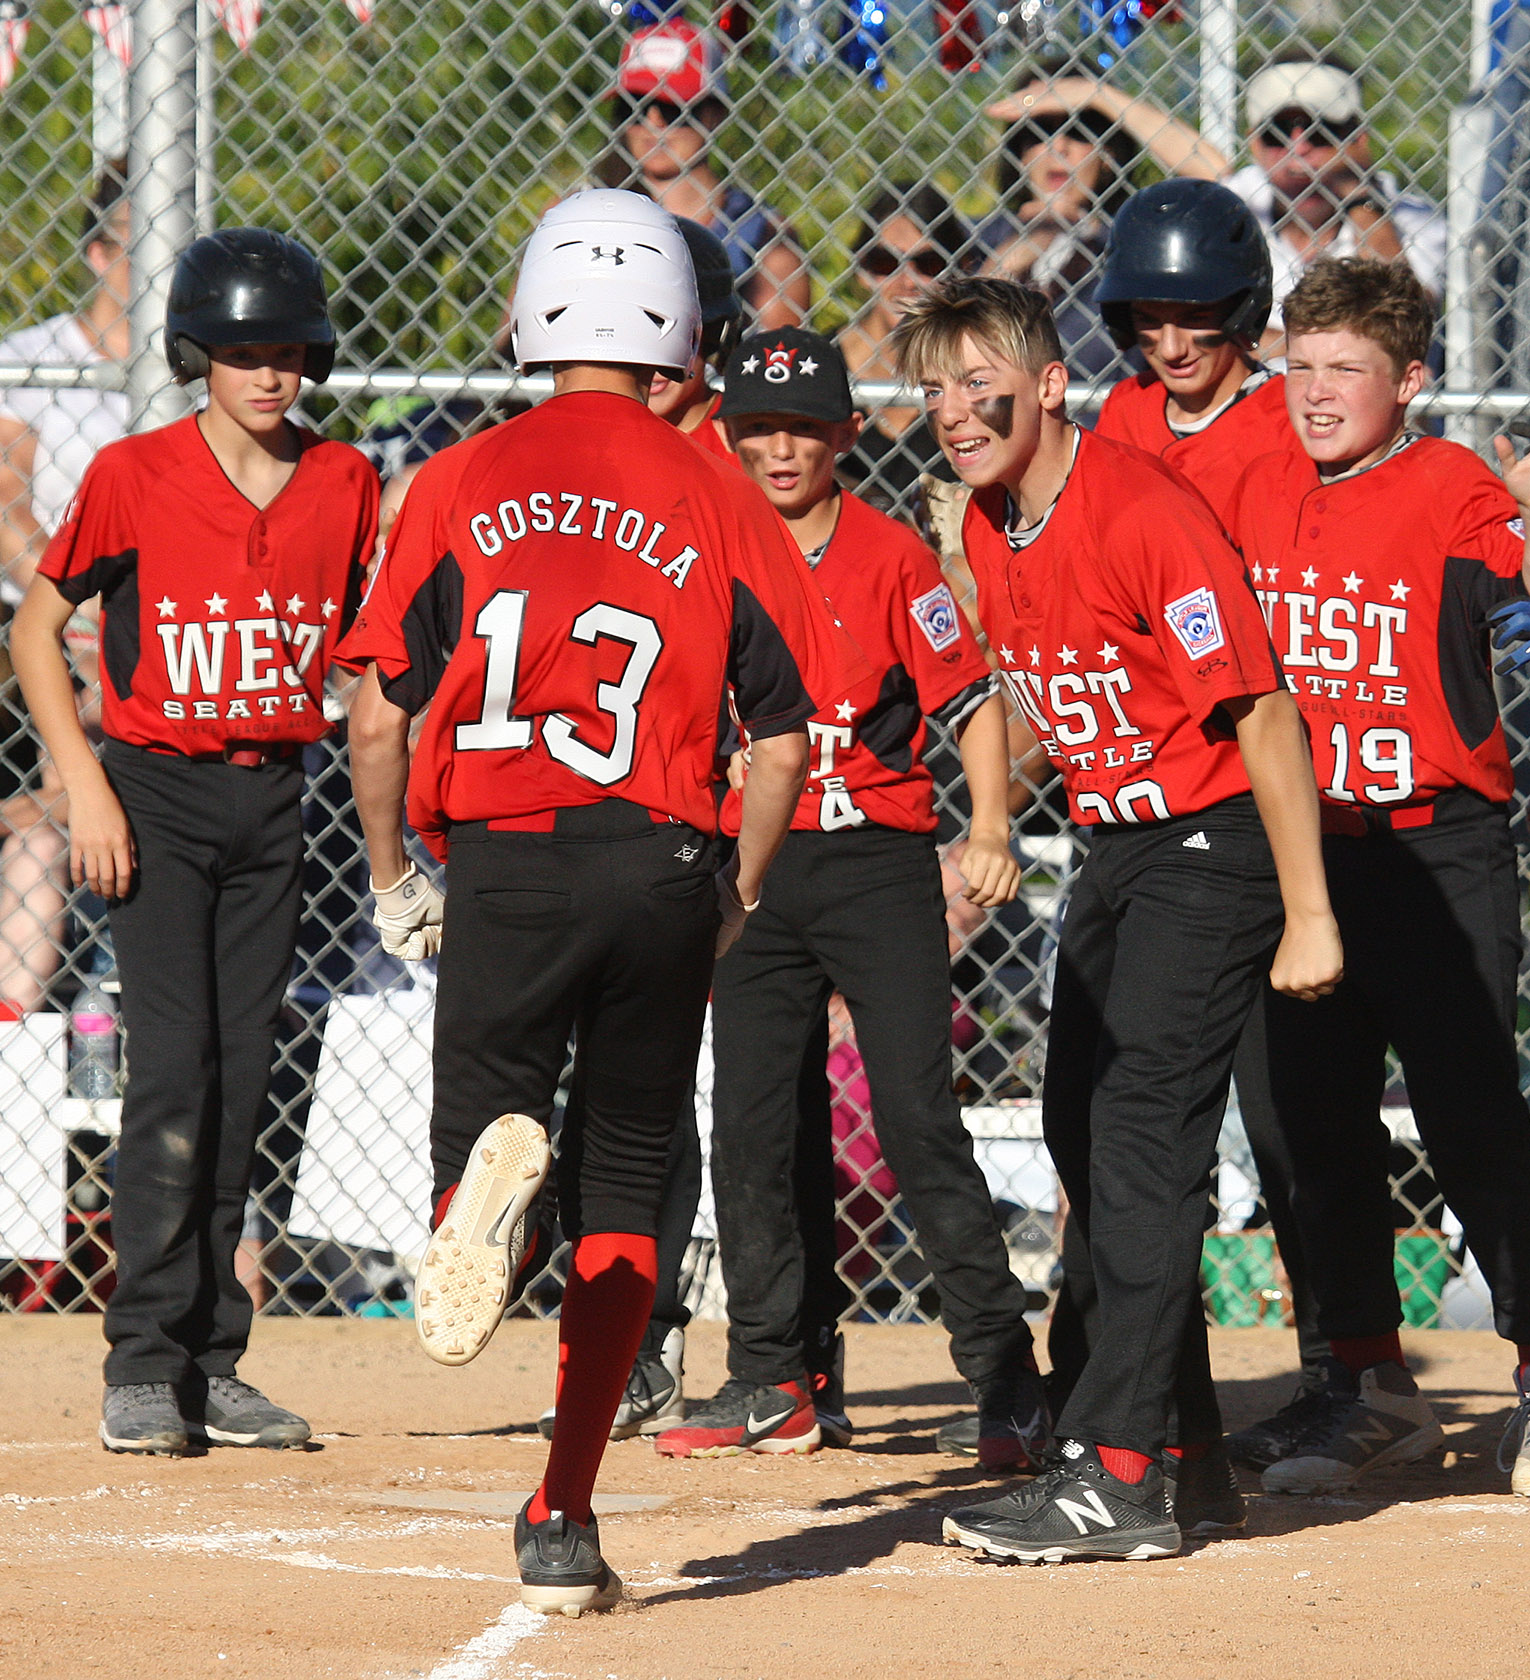 After hitting a home run Miles Gosztola of West Seattle is met by excited teammates at home plate.